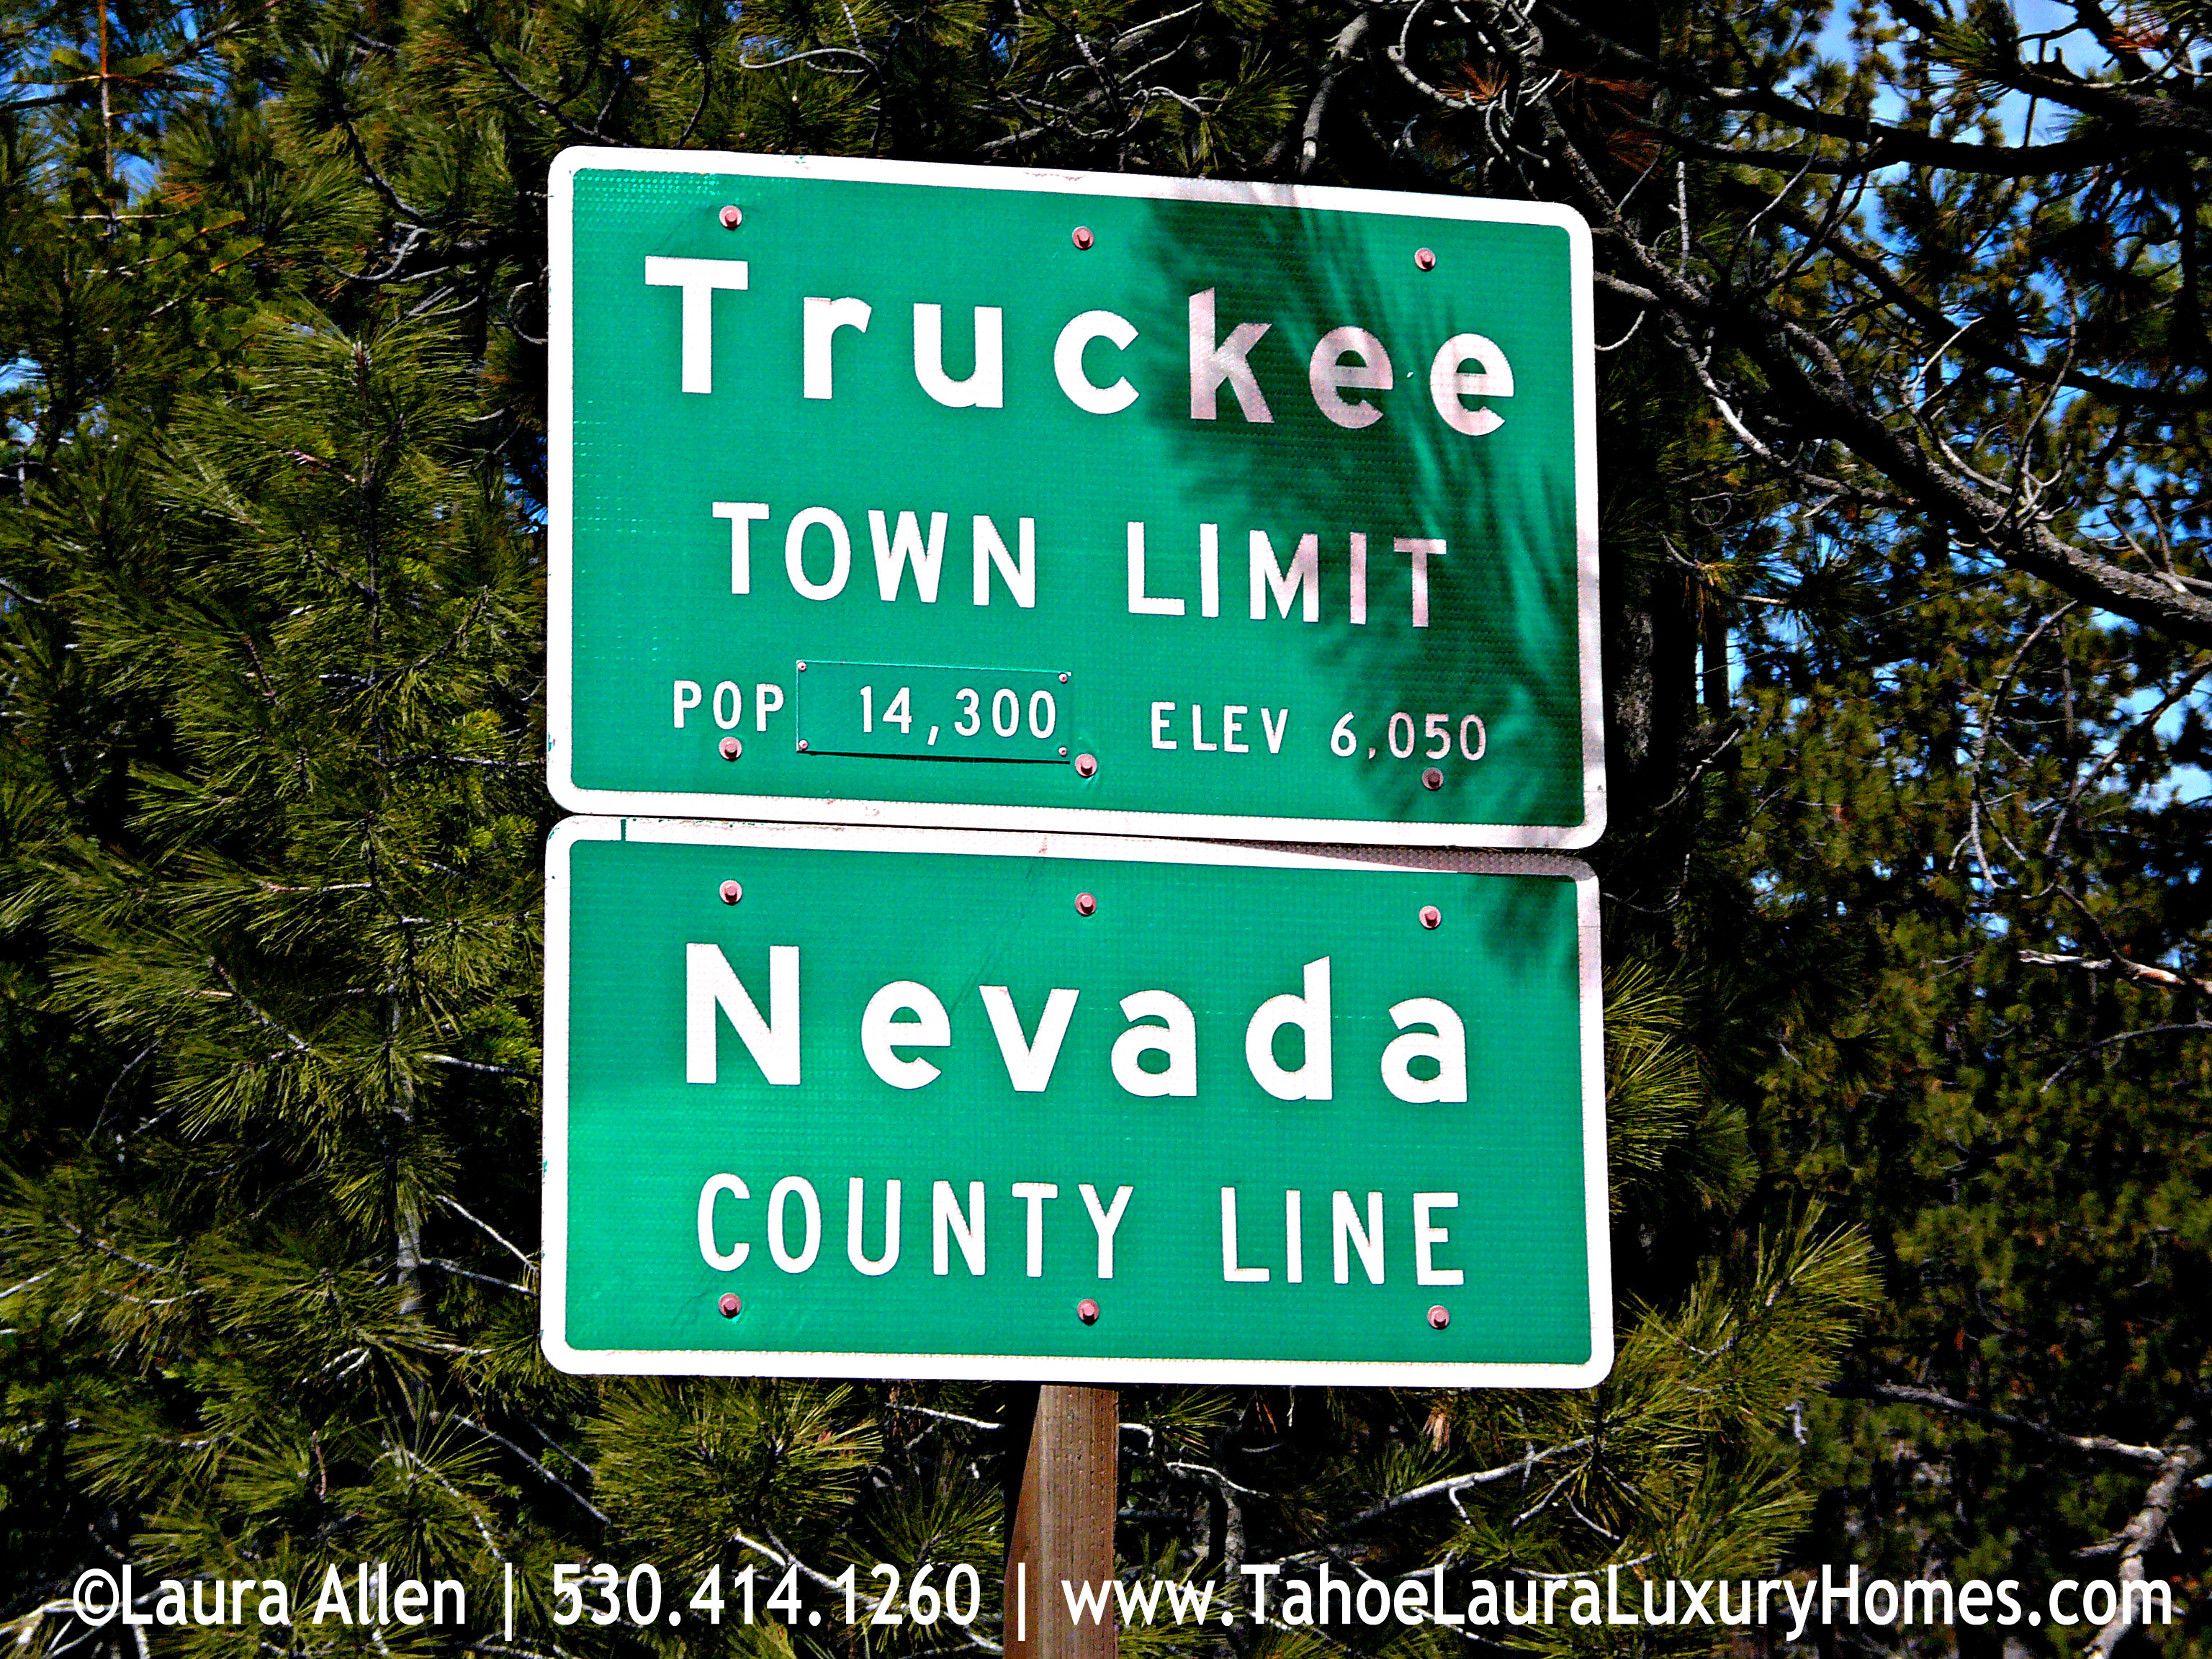 truckee dating Your official source for truckee-tahoe restaurants, lodging, activities, events, news, and business information.